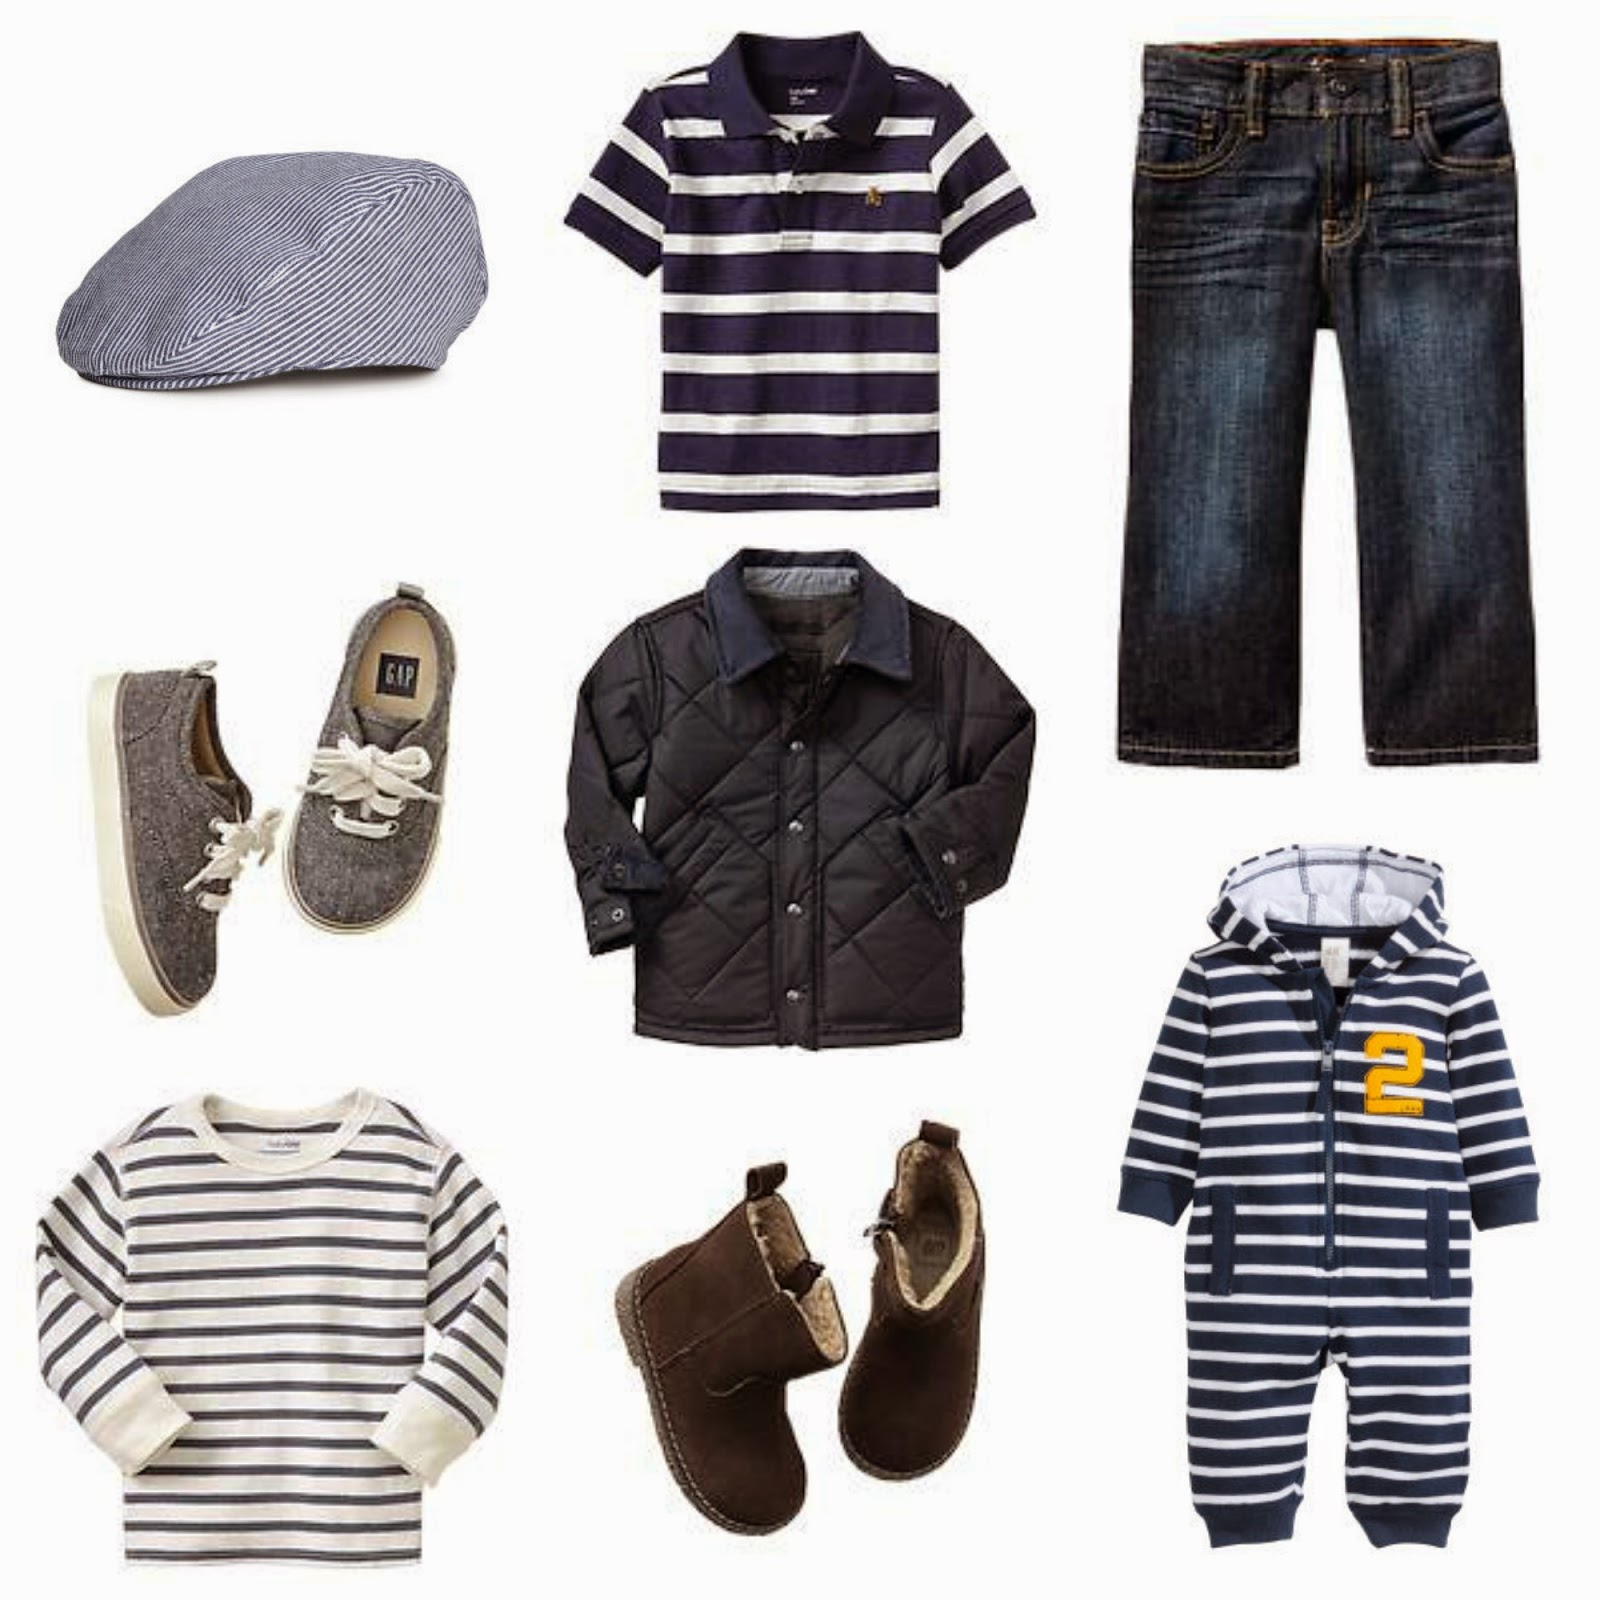 Baby OOTD 4 If we had a boy